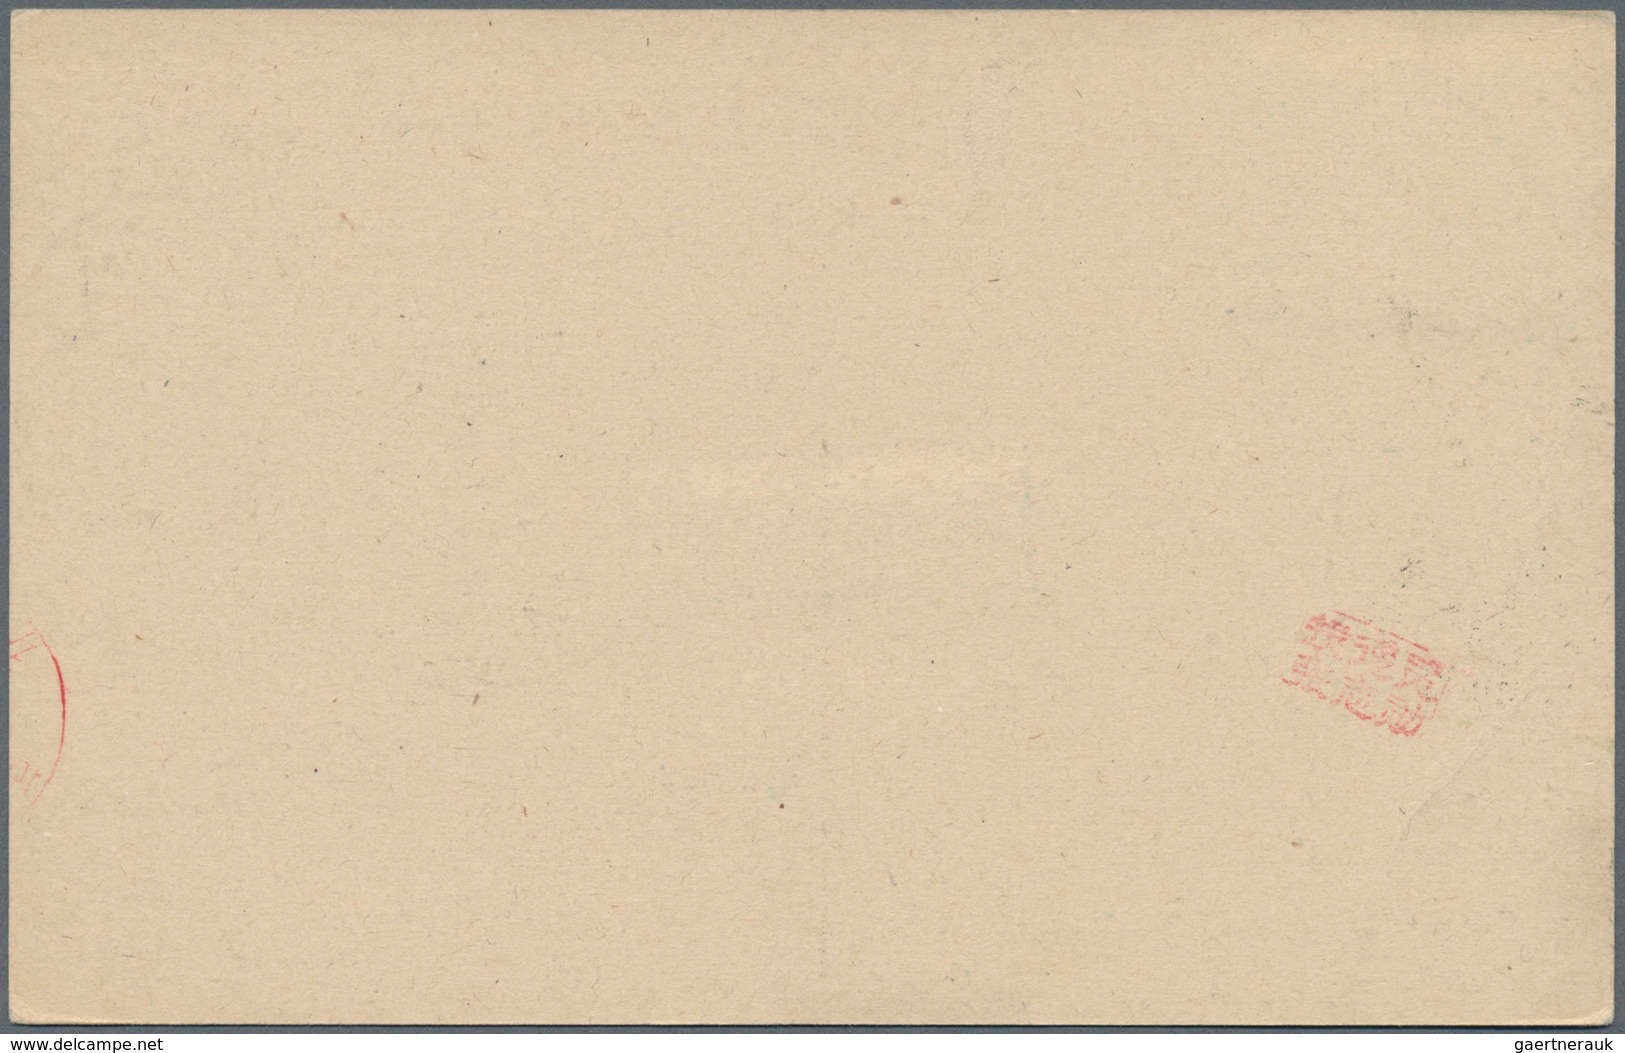 China - Volksrepublik - Ganzsachen: 1981, Used In Tibet, Cards 2 F. Brown (1-1981) Uprated By Air Ma - Cartes Postales